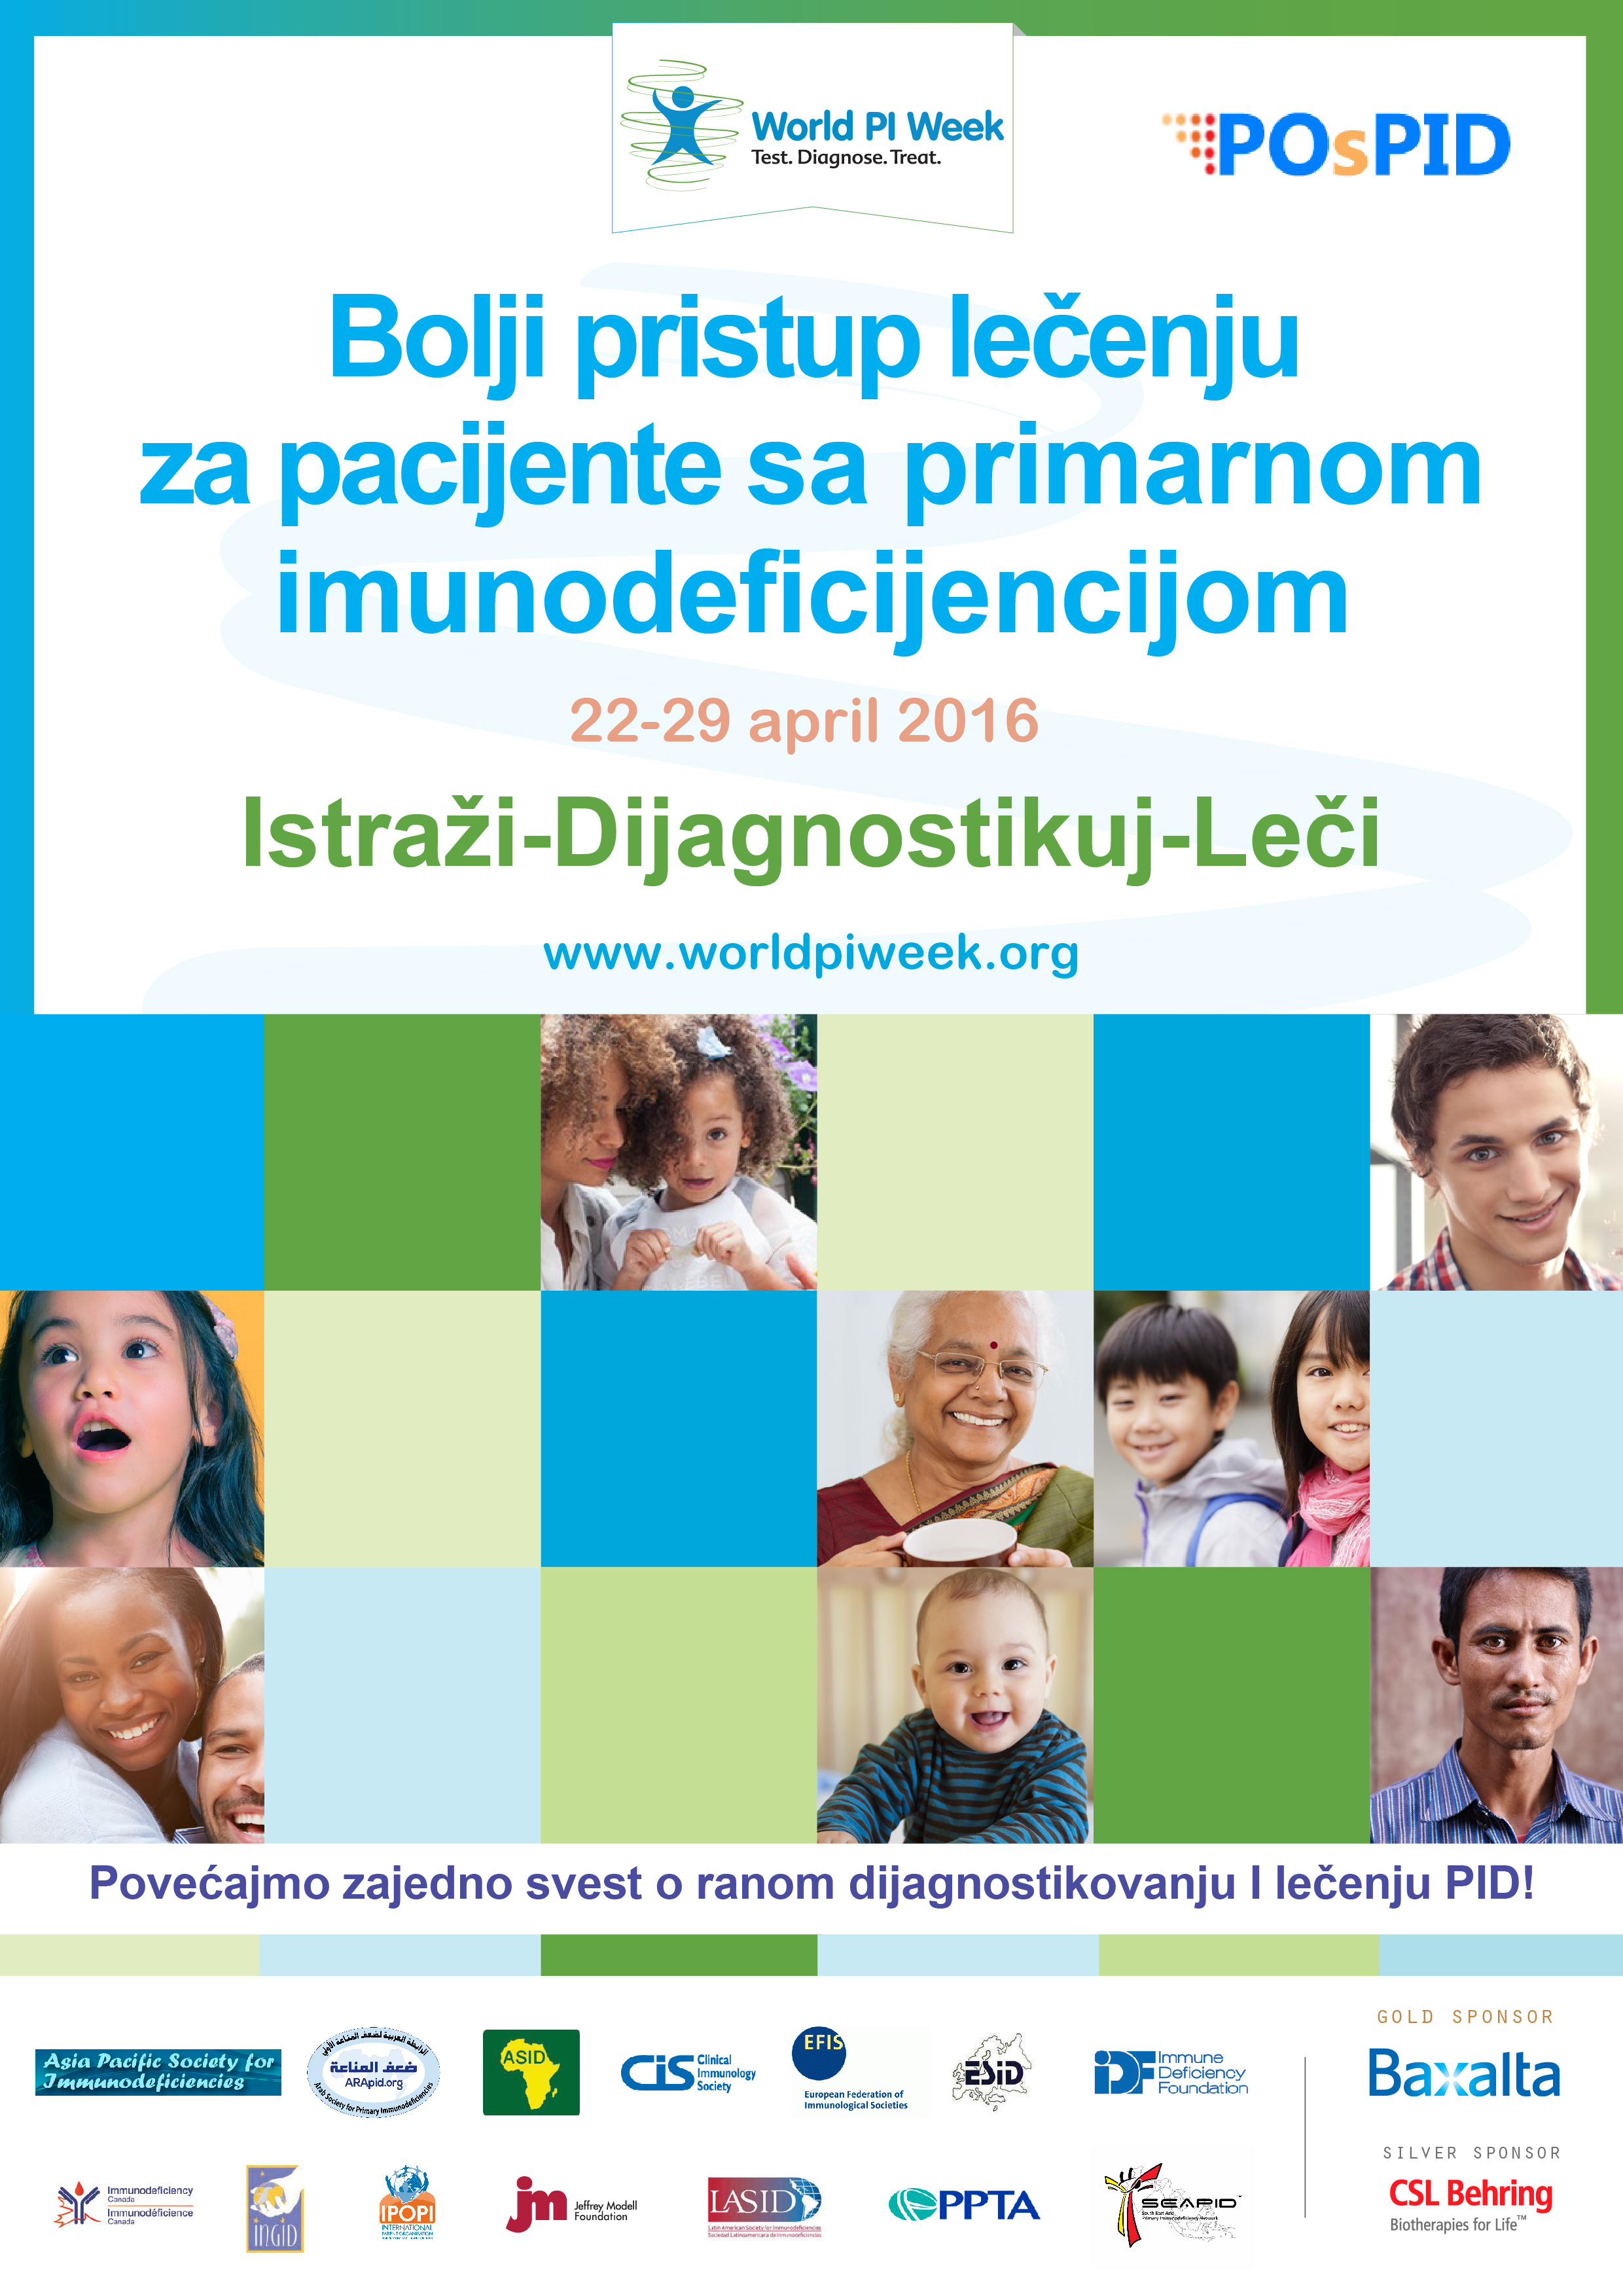 poster world pi week POsPID sponsor serbian